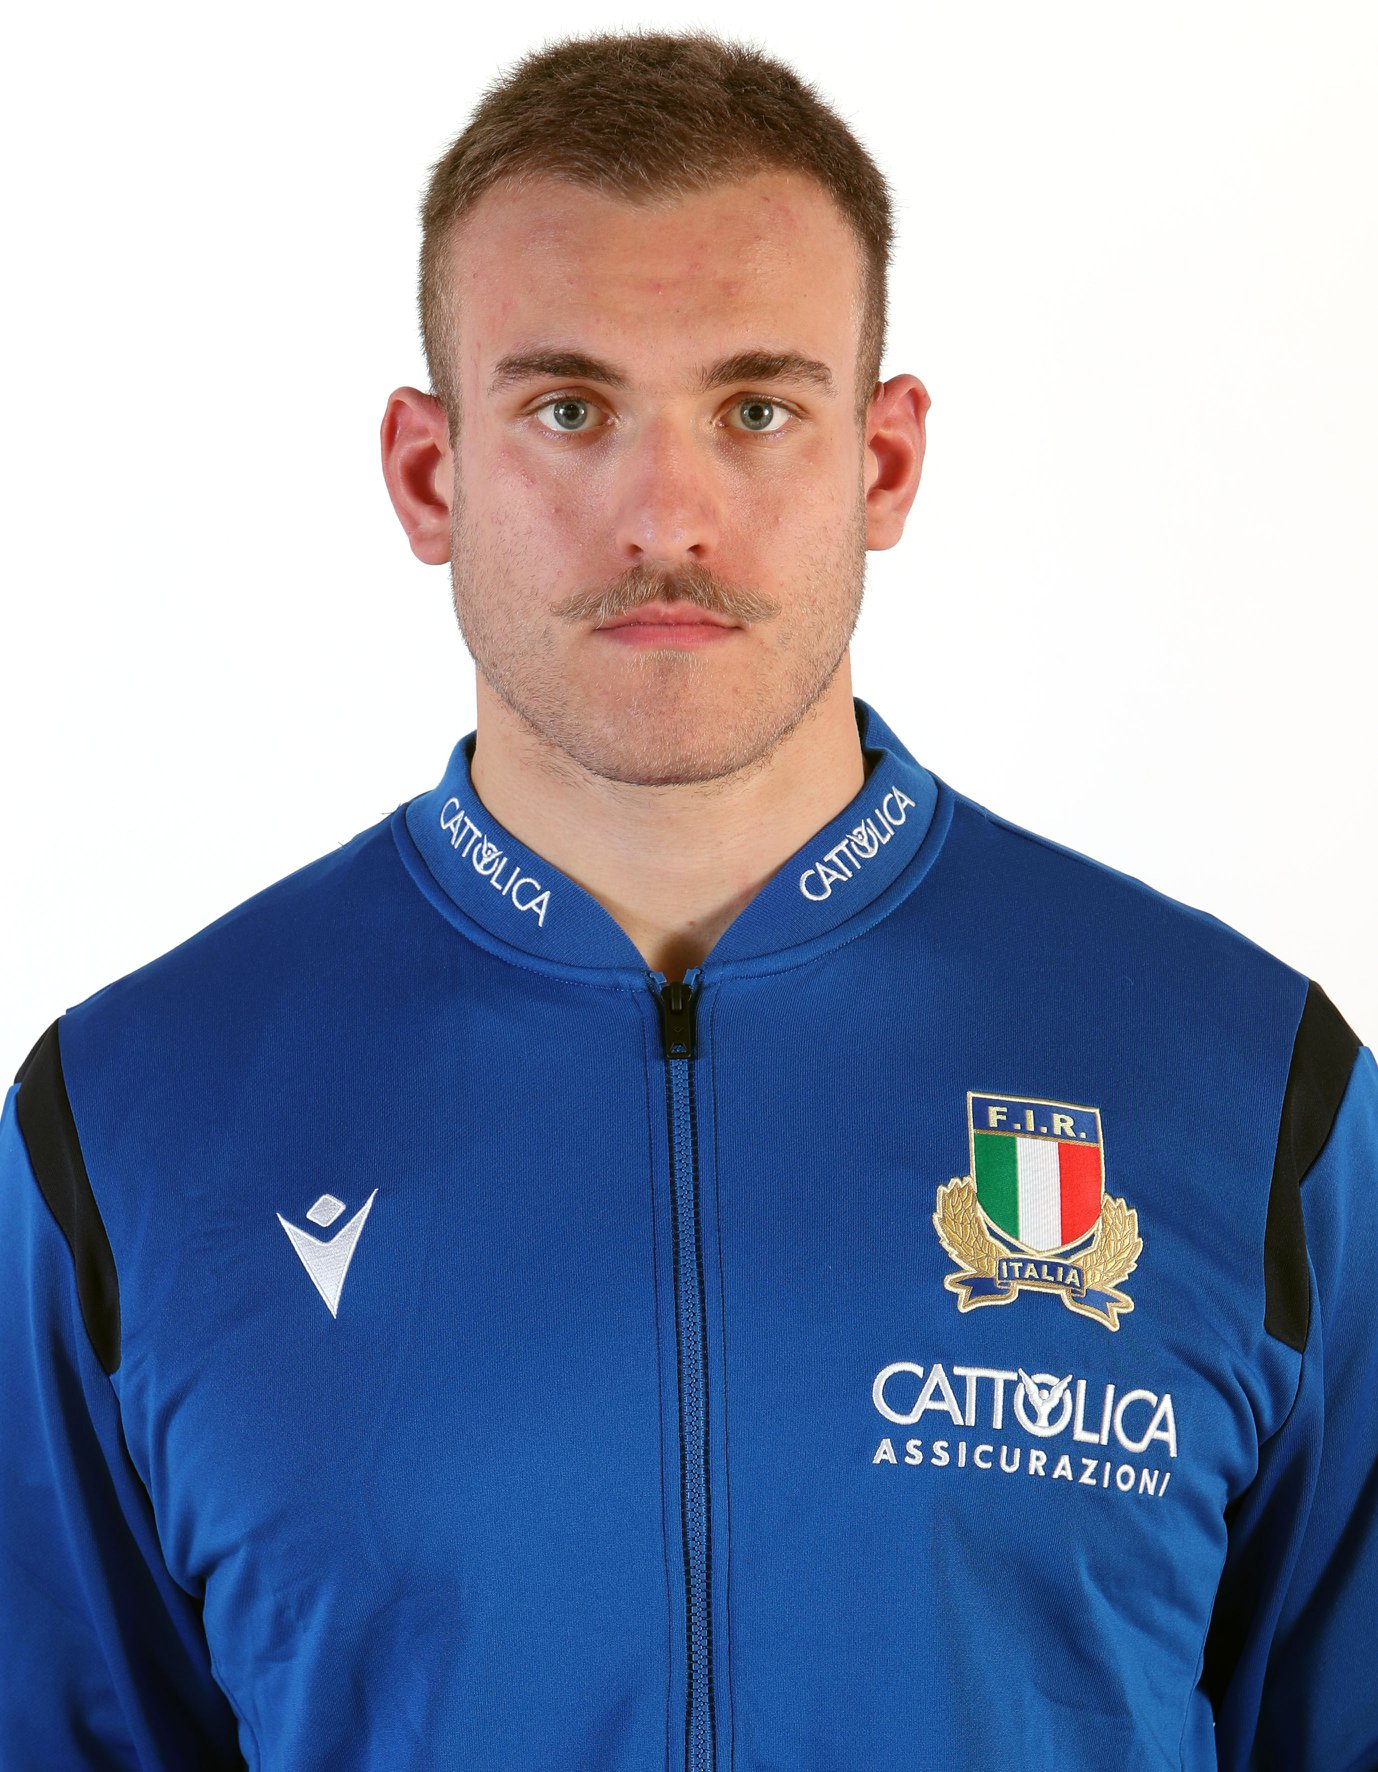 Rugby – Riccardo Andreoli convocato in nazionale under 20